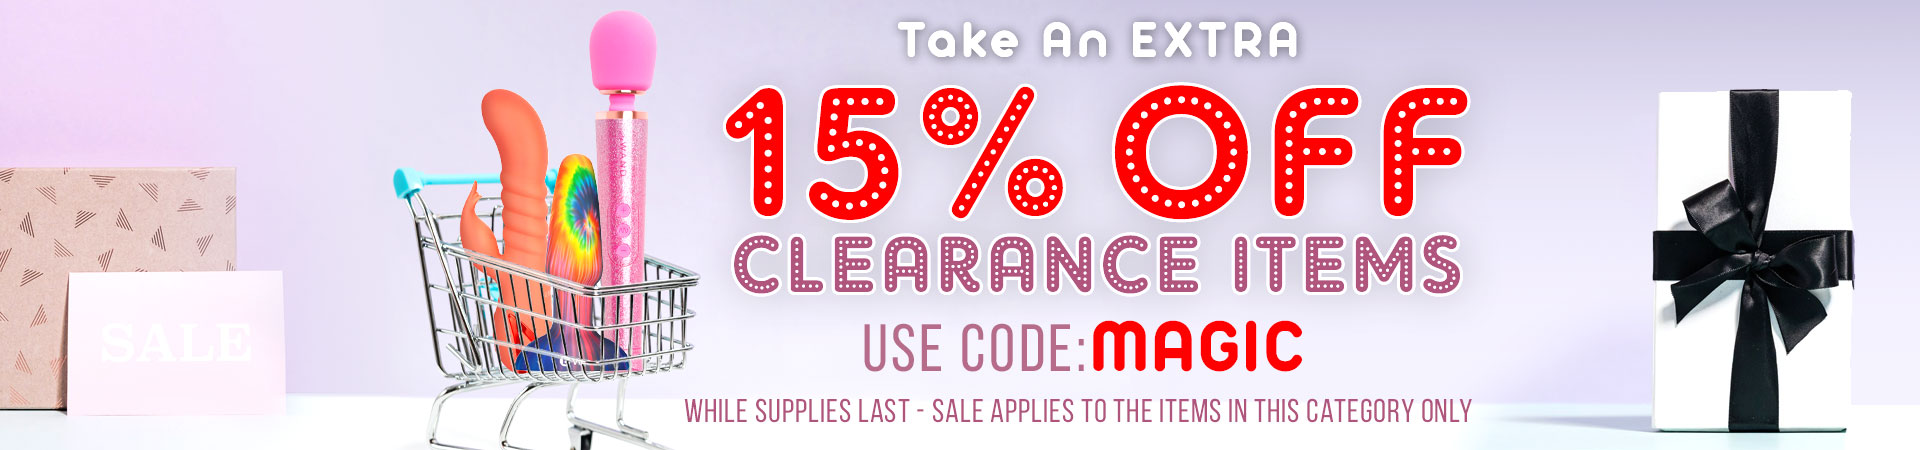 15% Off Clearance Items - Use Code: MAGIC - While Supplies Last!